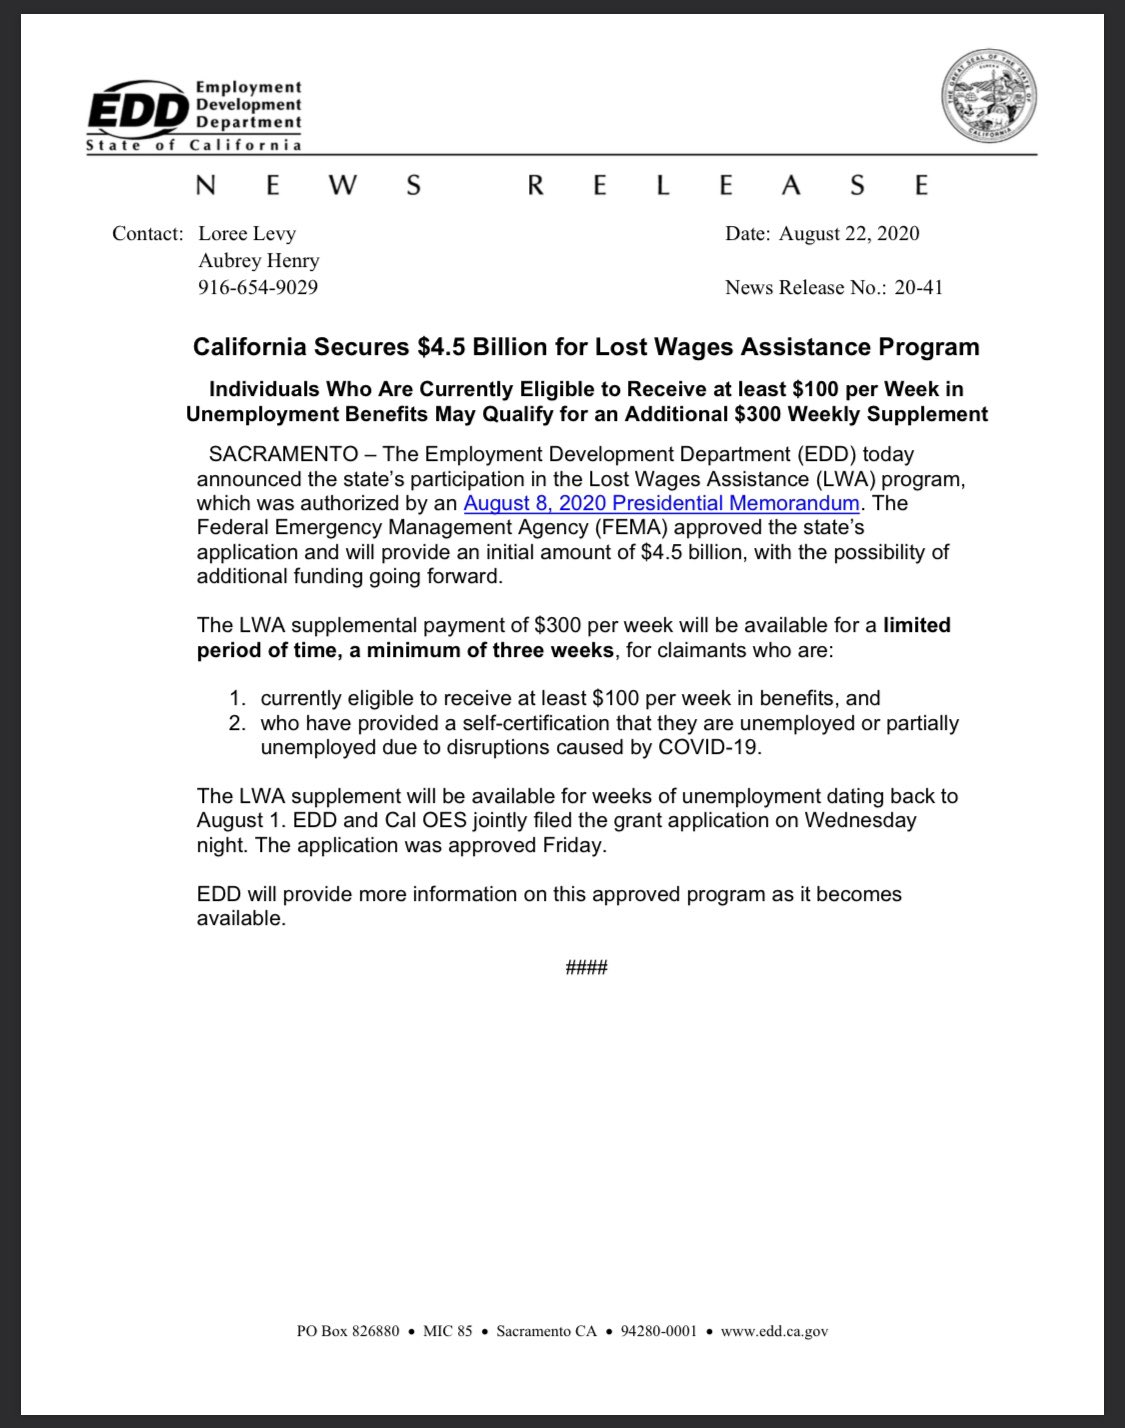 California Lost Wage Assistance